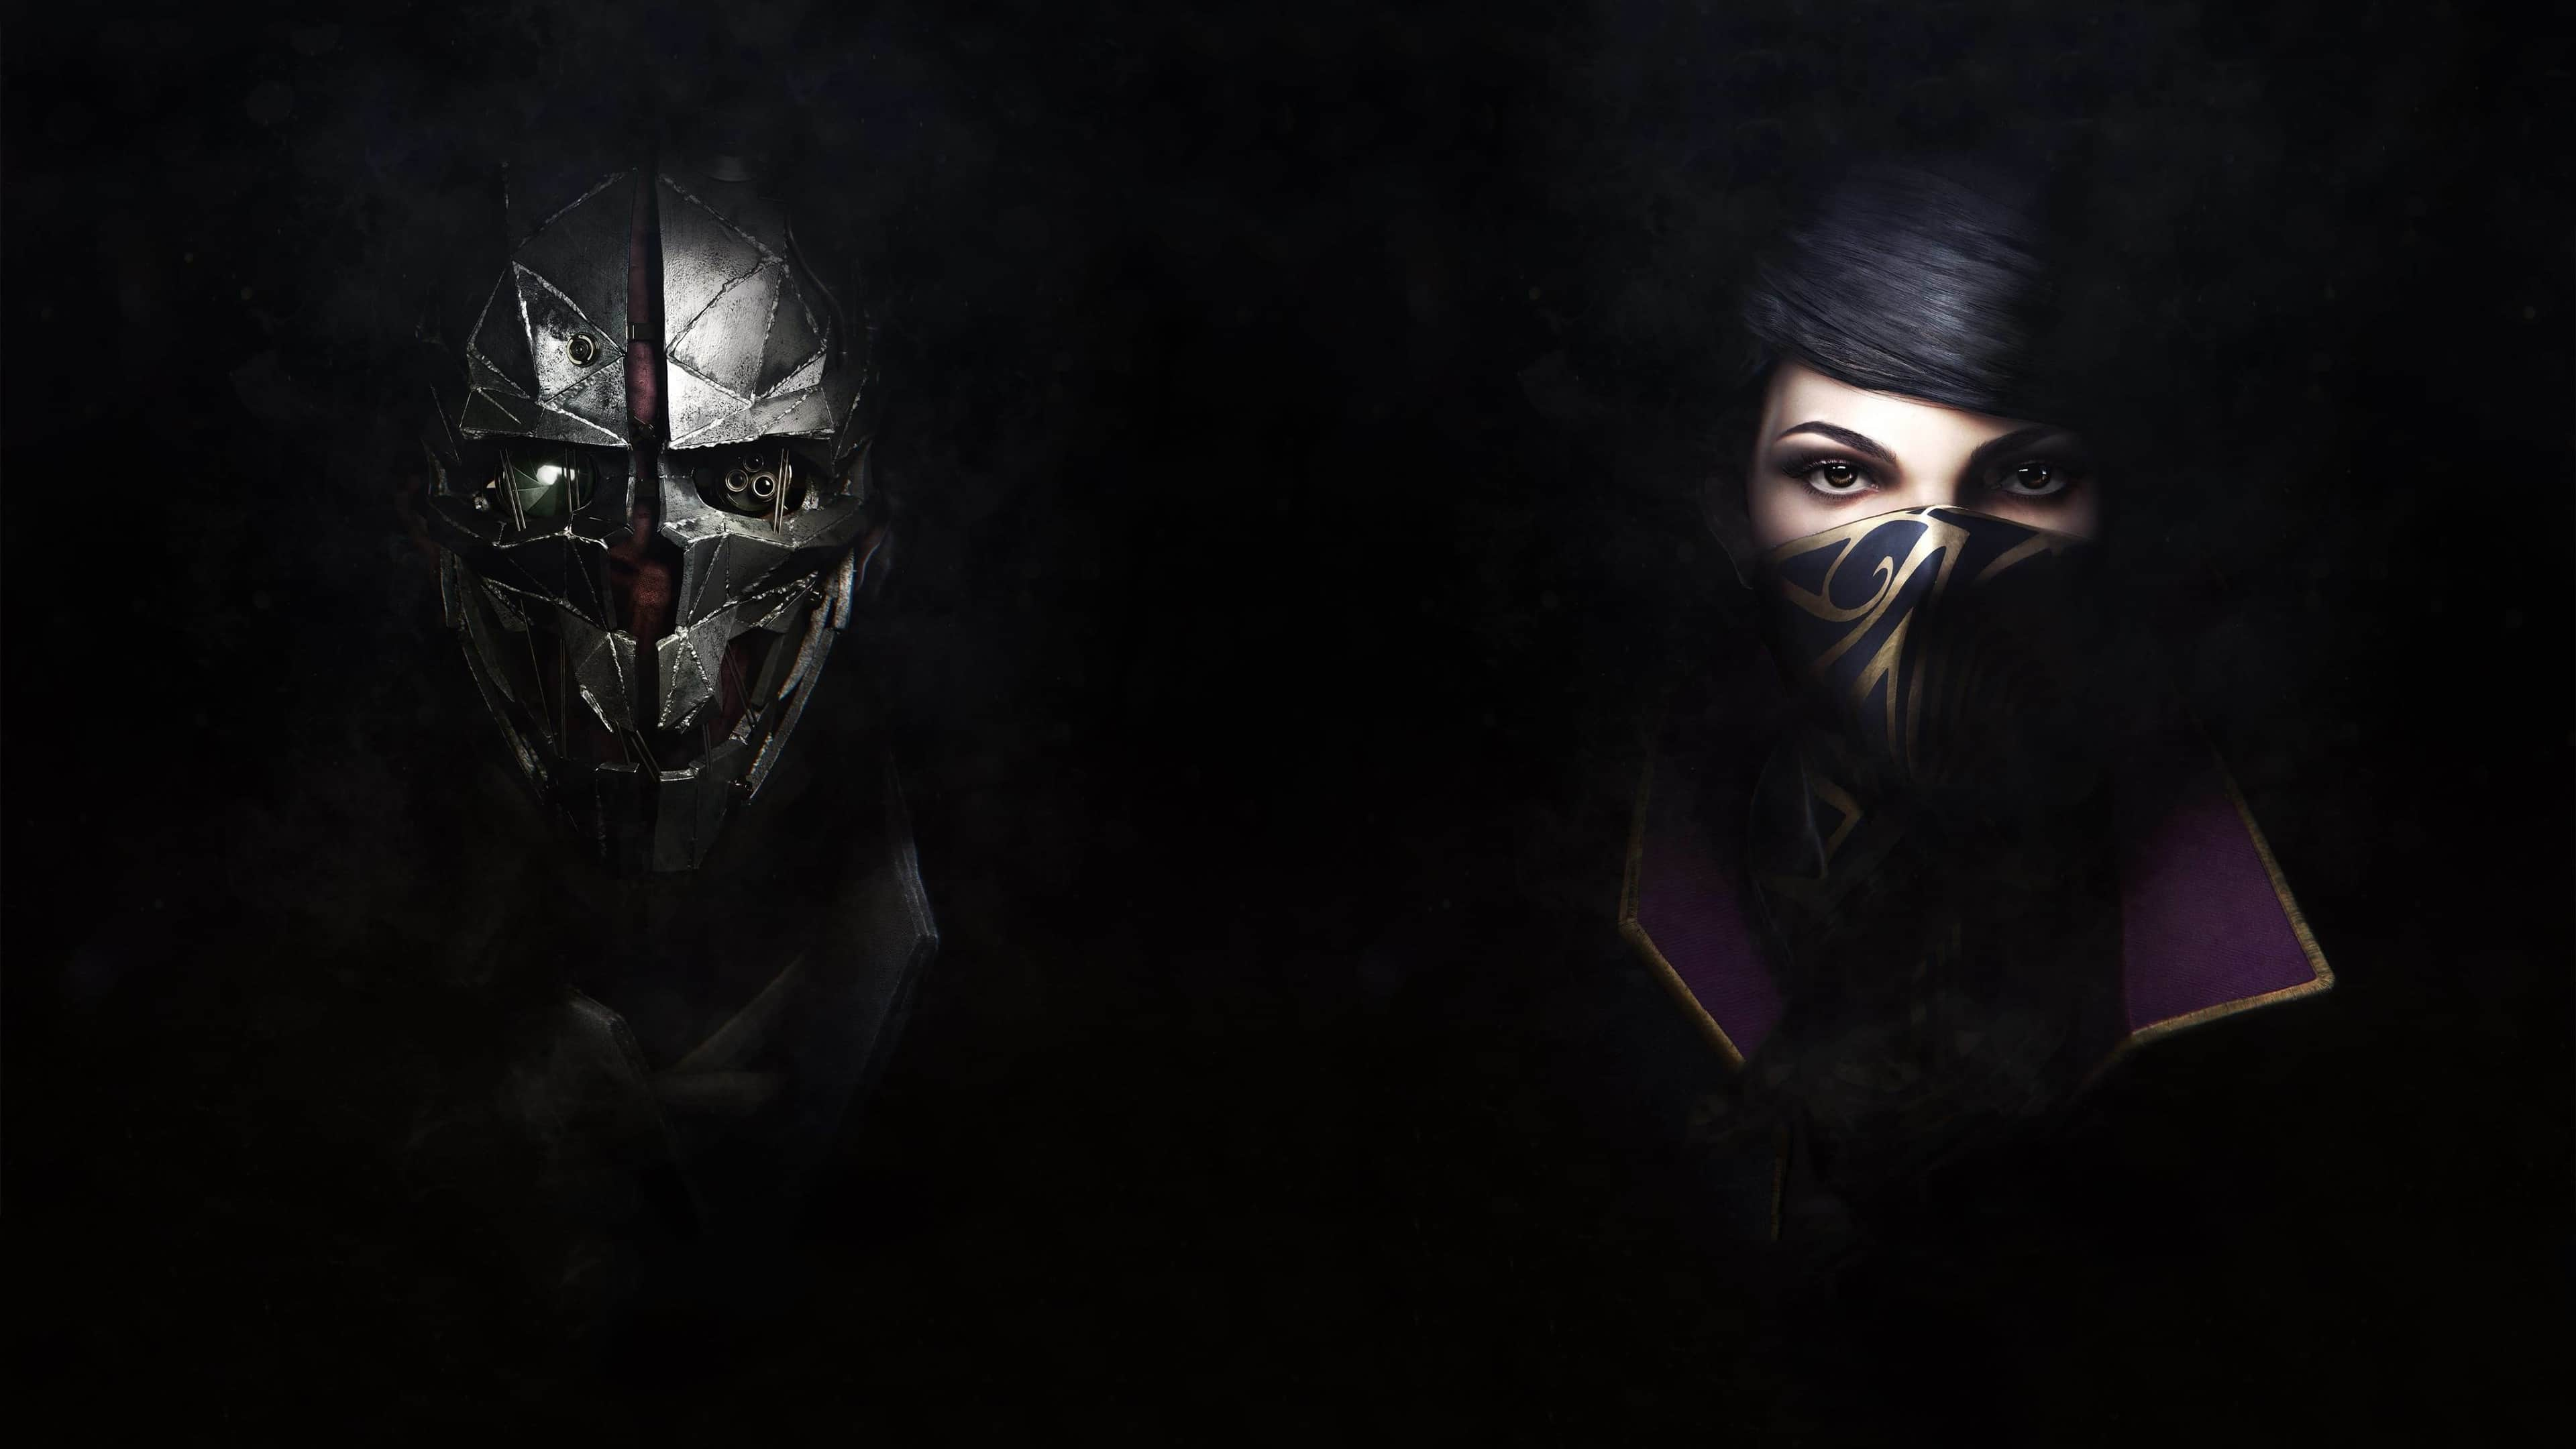 Dishonored Wallpaper 4k: Dishonored 2 Emily And Corvo UHD 4K Wallpaper